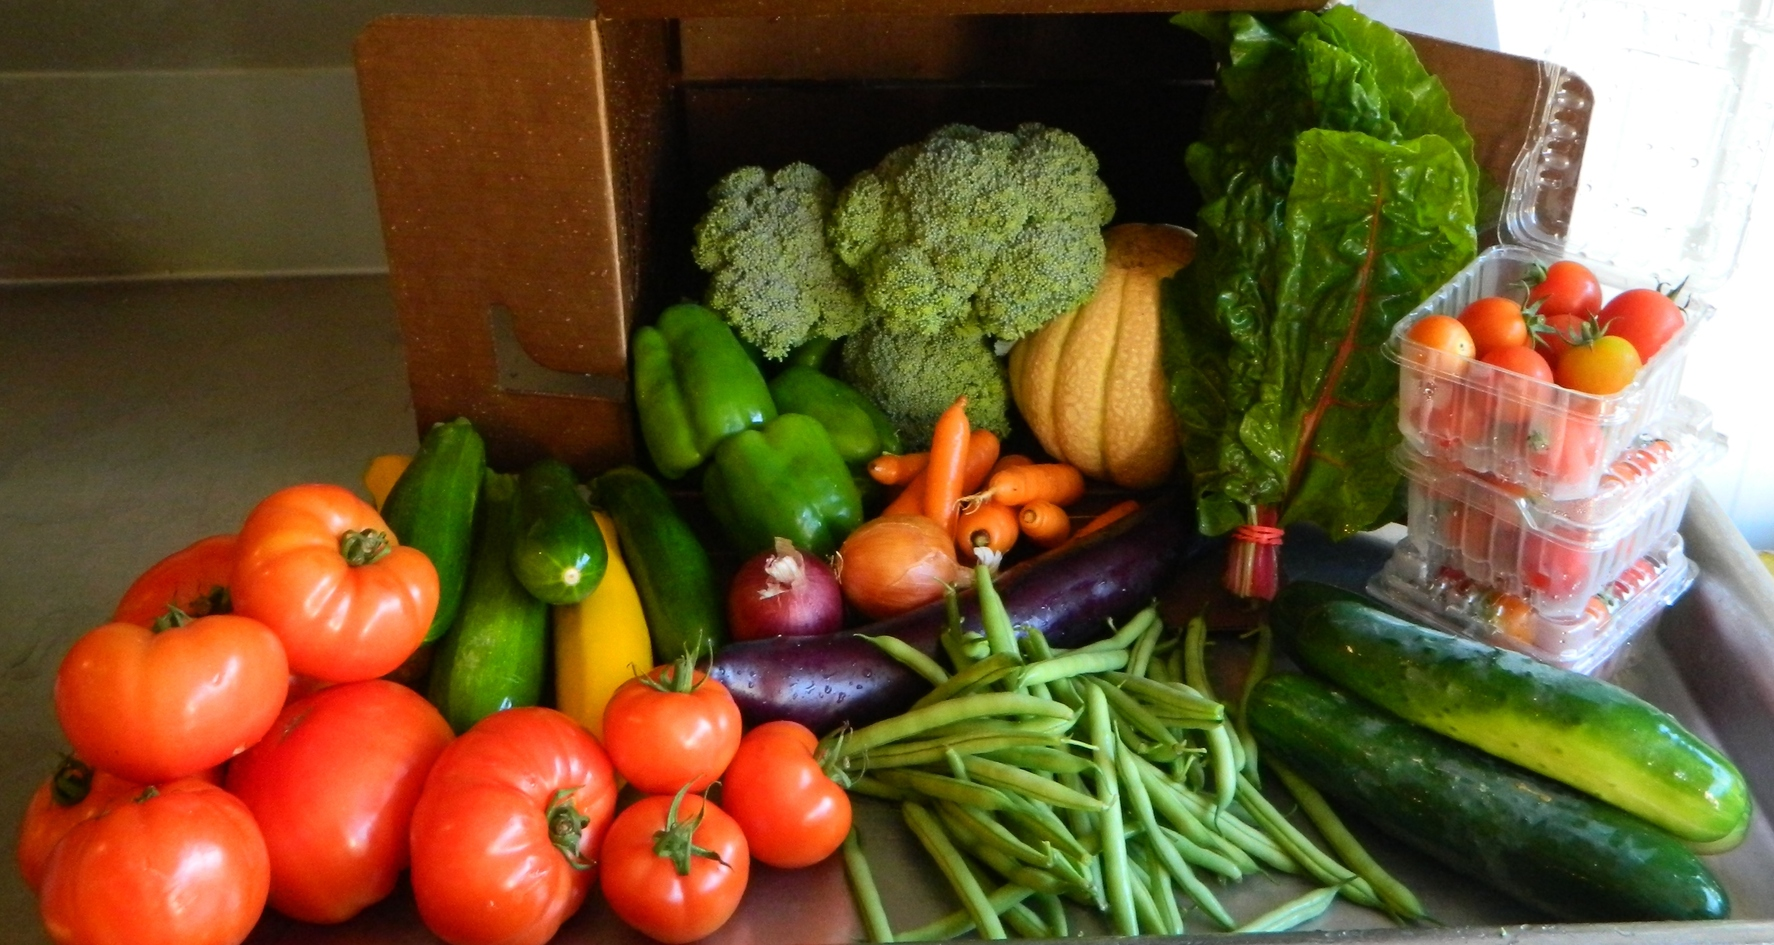 Stock Up On Vegetables